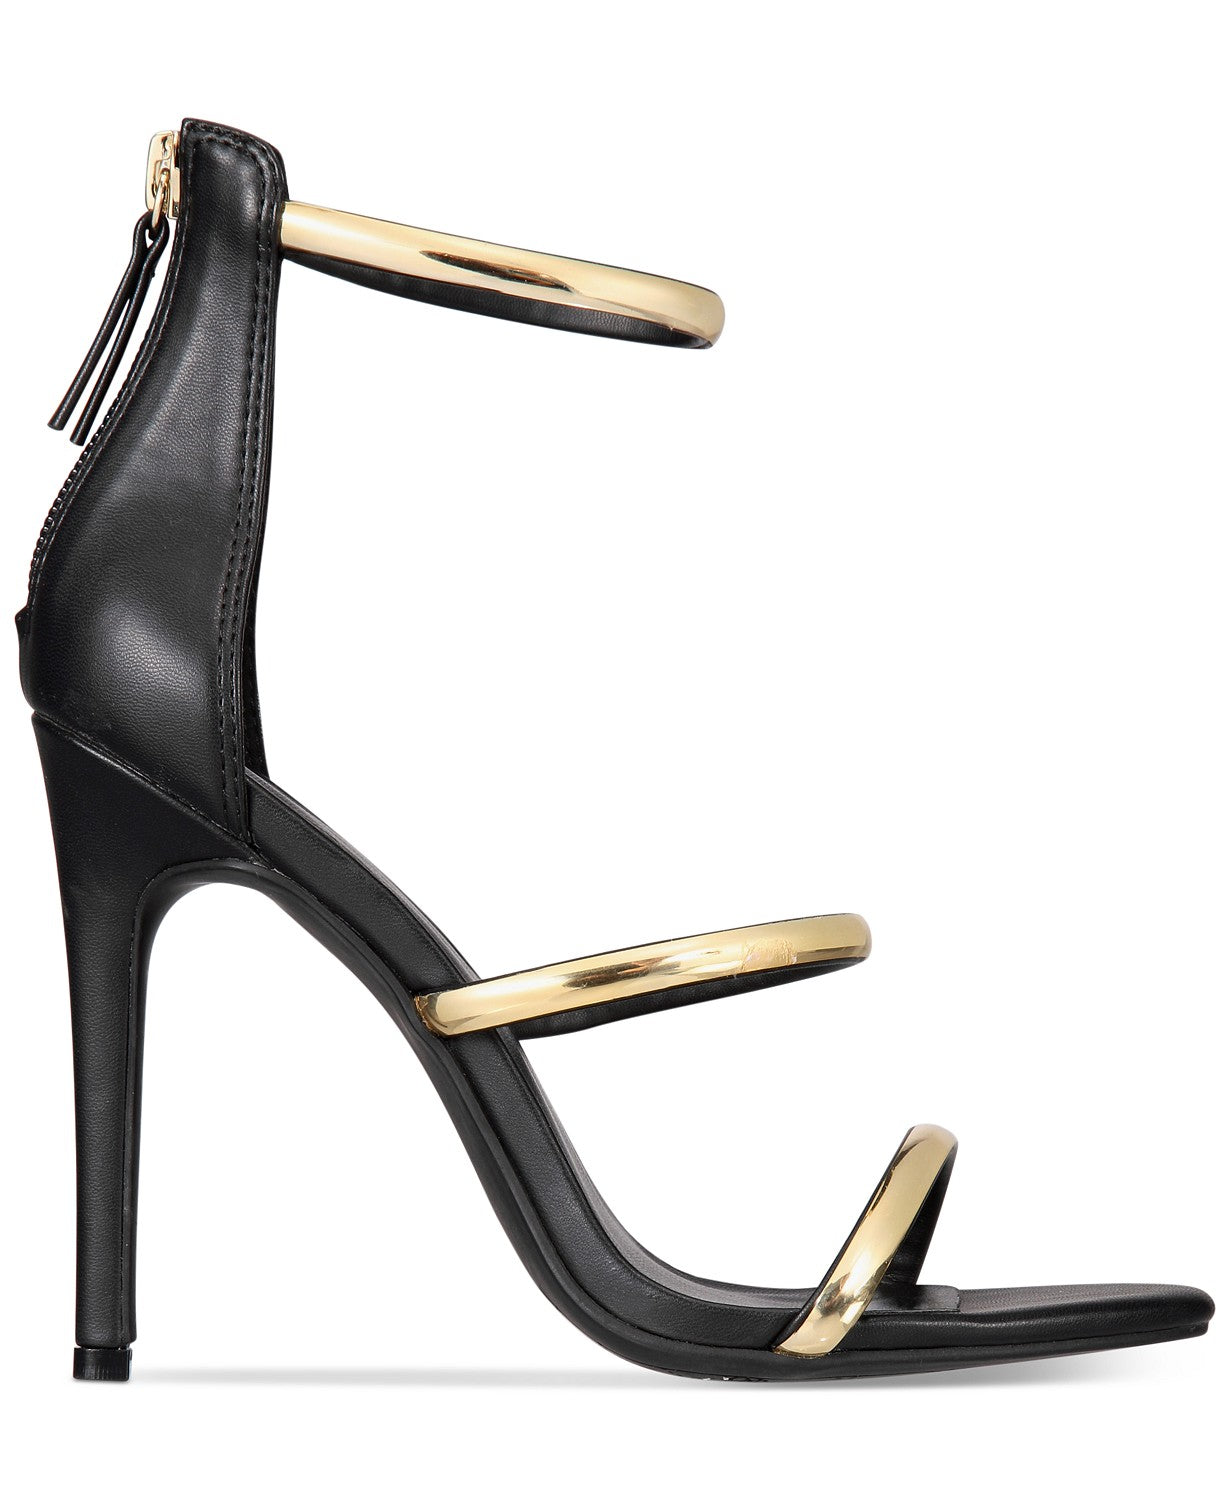 bebe Berdine Ankle-Strap Dress Sandals  Bebe  kick-it-shoe-outlet.myshopify.com Kick-it Shoe Outlet Shoes Cheap